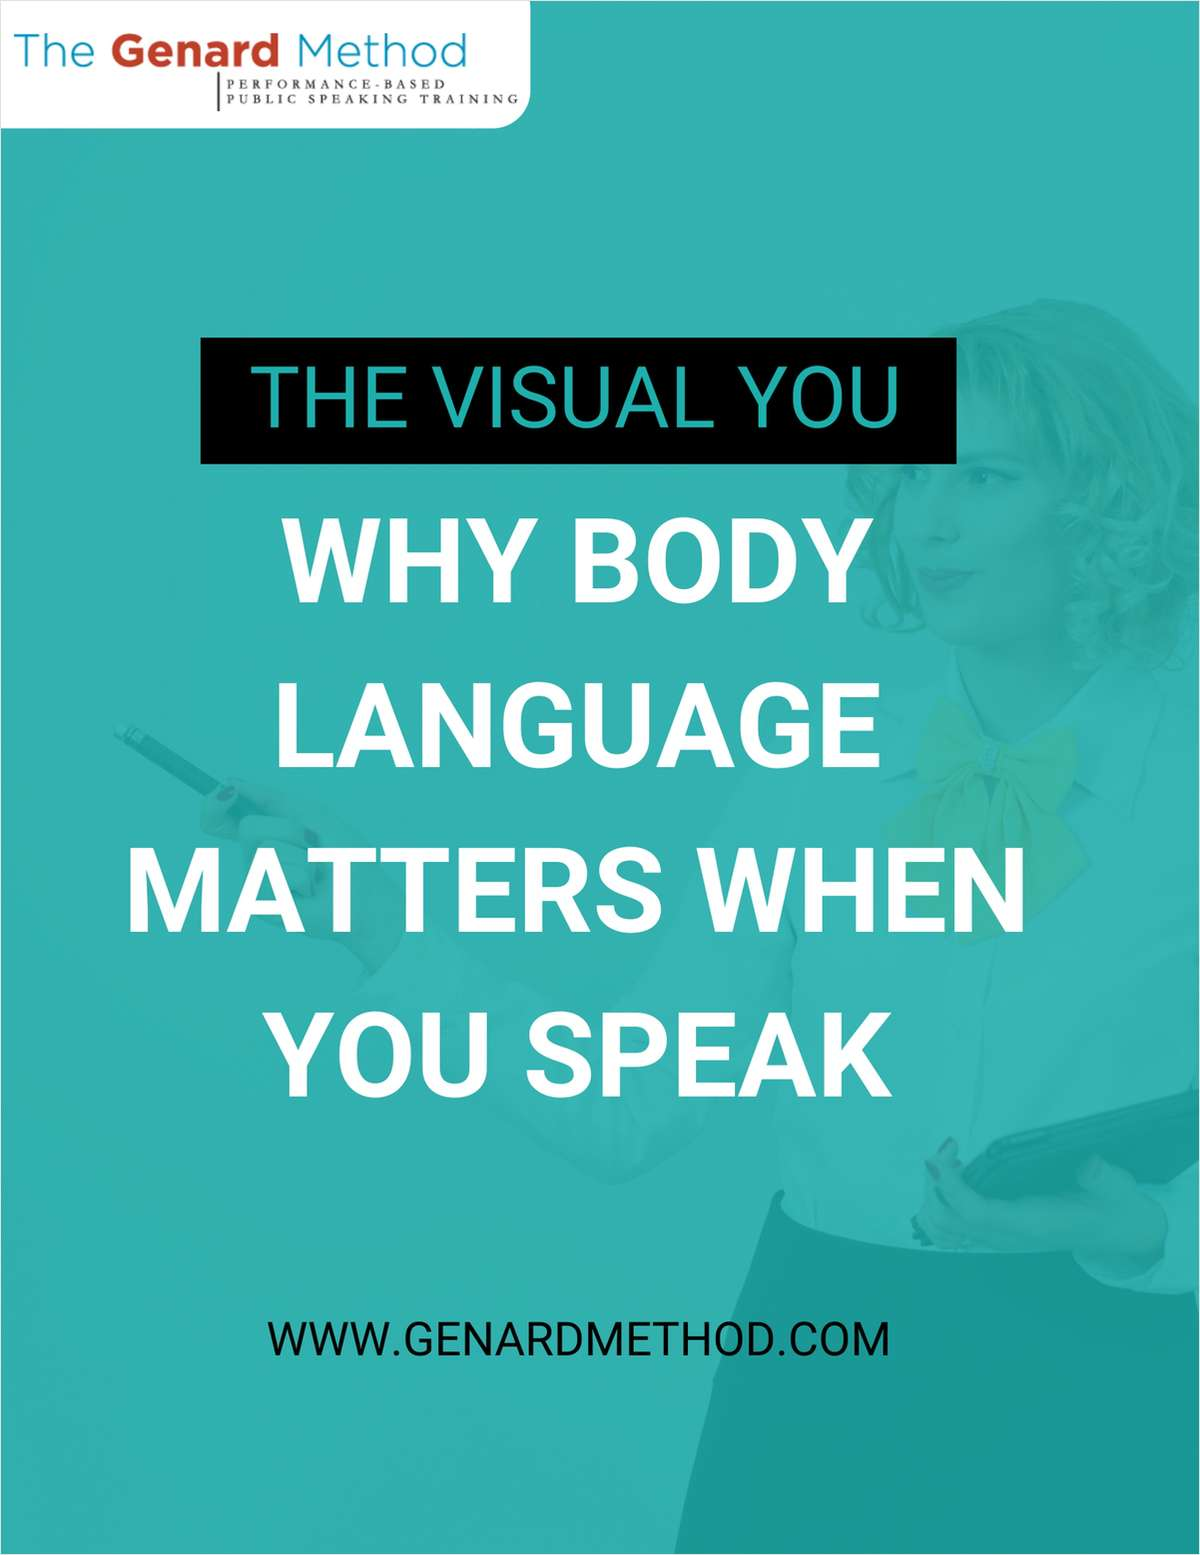 The Visual You - Why Body Language Matters When You Speak